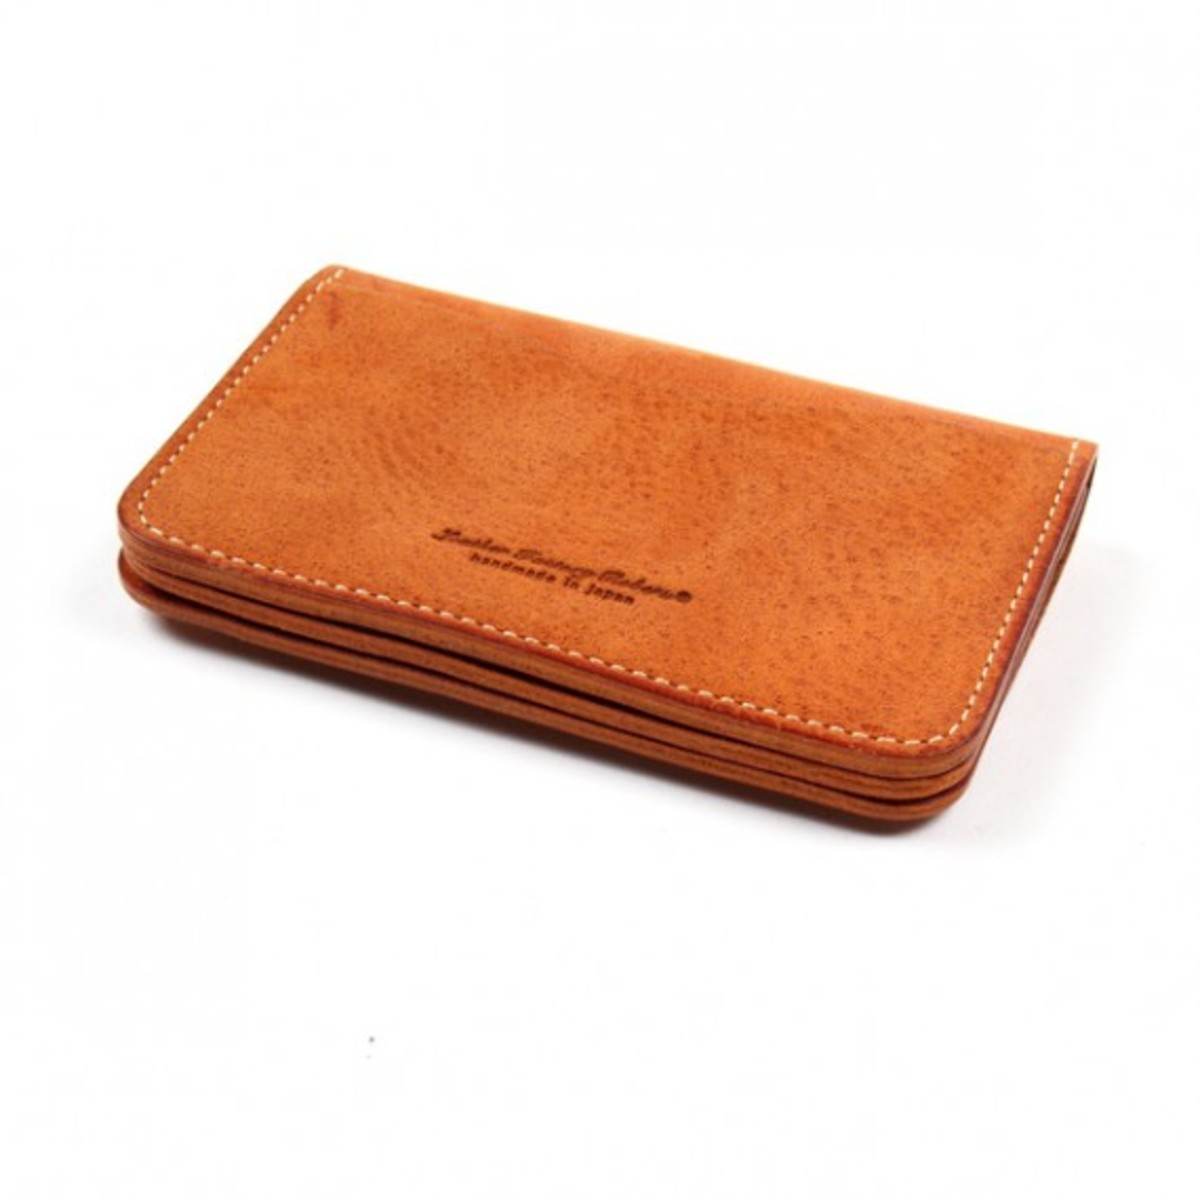 roberu-leather-wallet-03